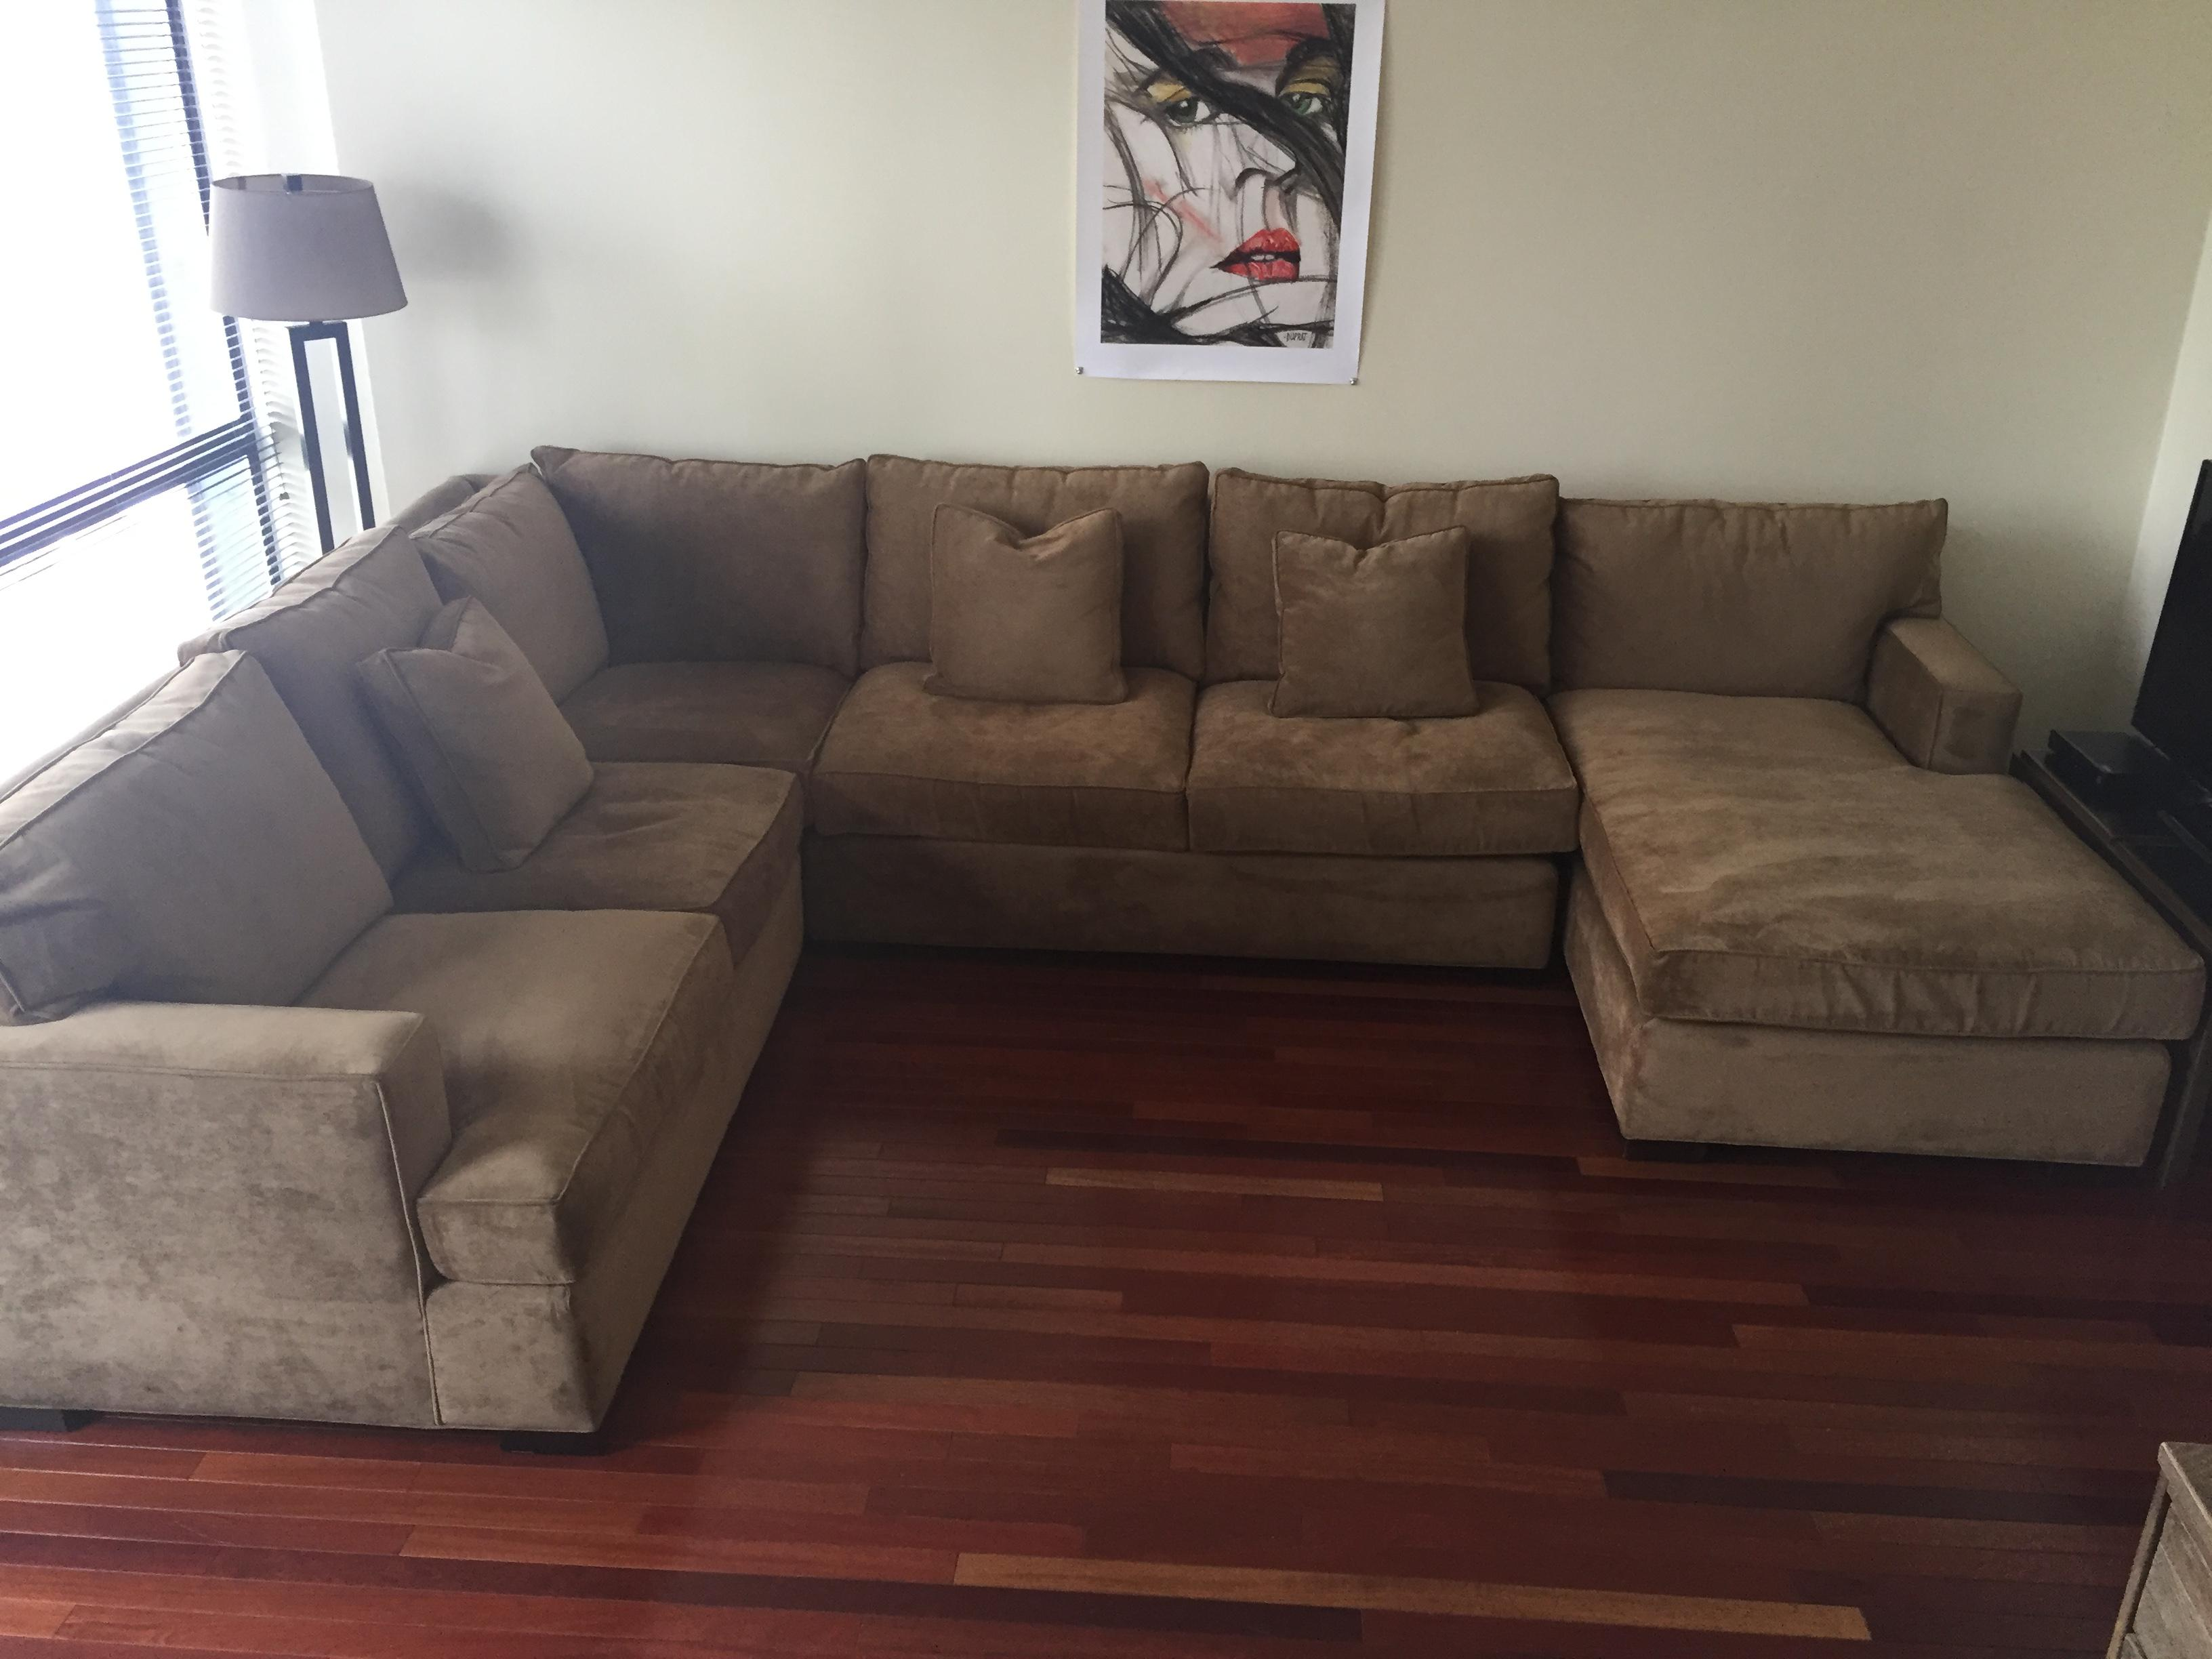 Beau Arhaus Arhaus Dune Sectional Sofa For Sale   Image 4 Of 10